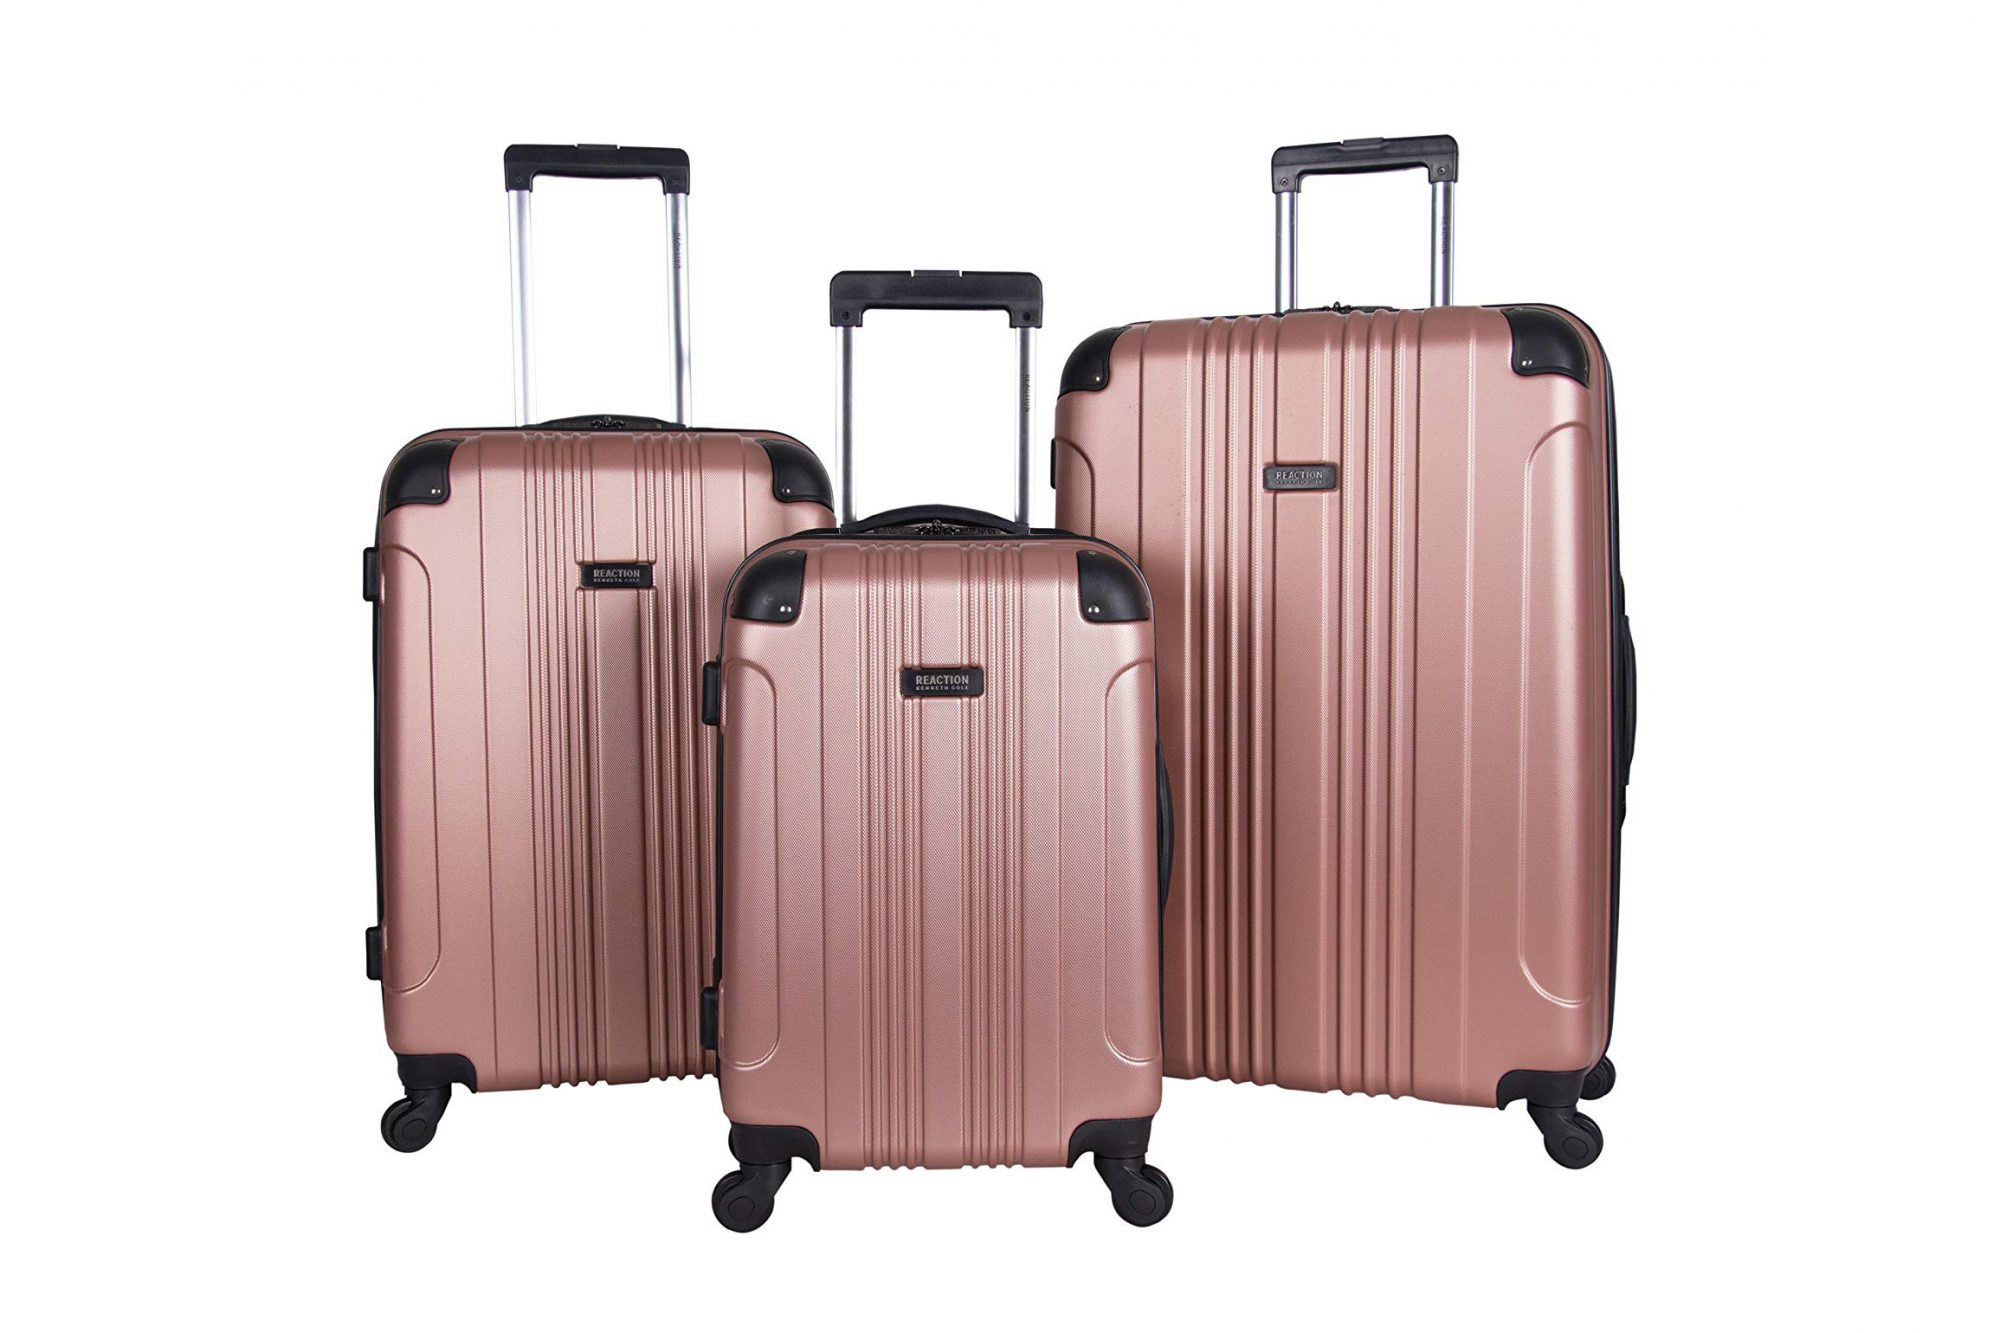 Kenneth Cole 'Reaction Out of Bounds' 3-piece Luggage Set